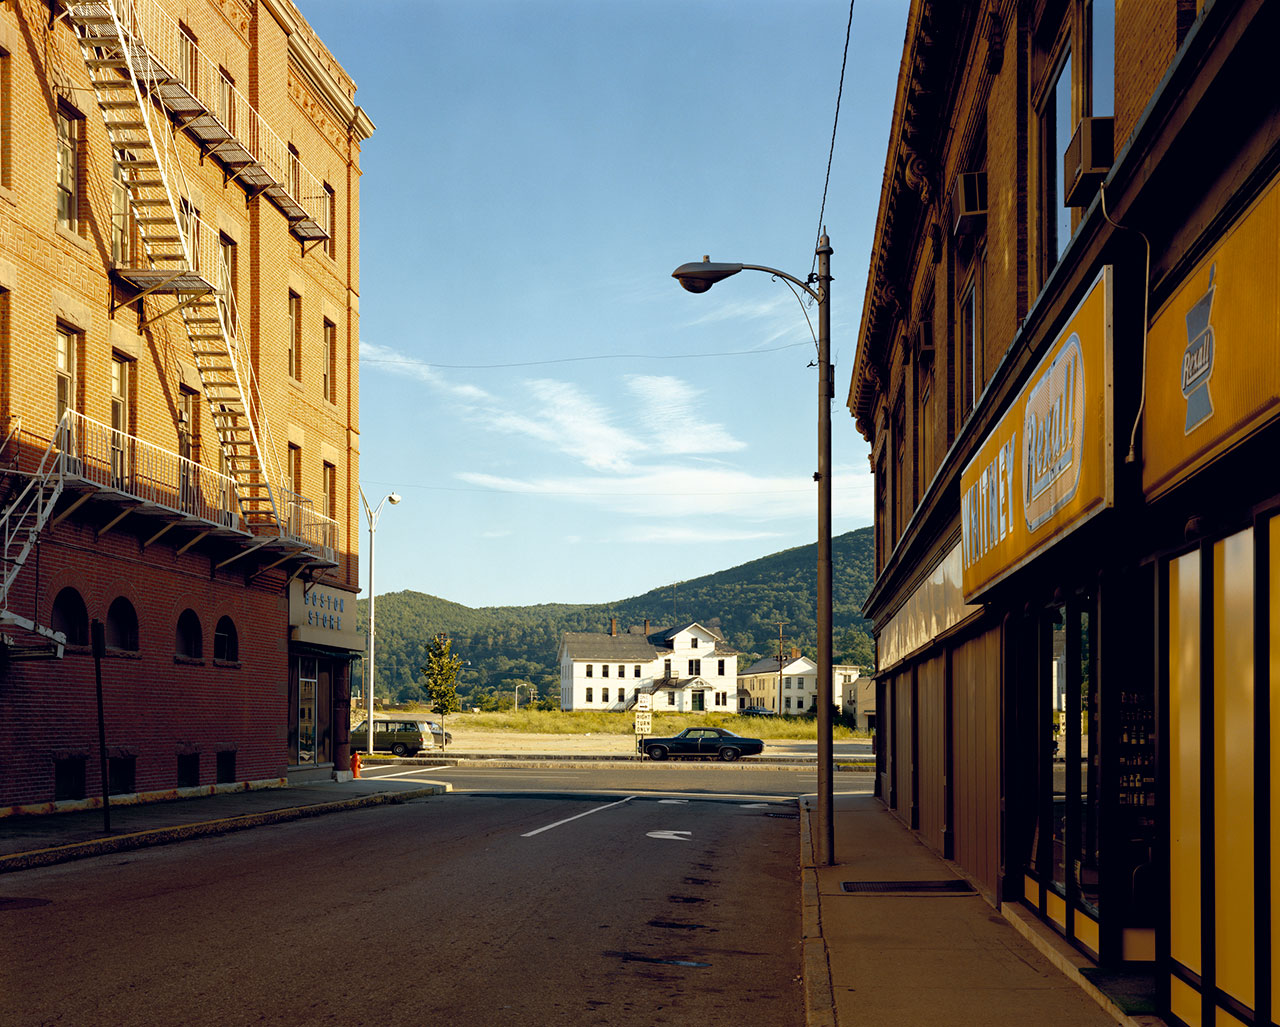 Stephen Shore, 'Holden Street, North Adams, Massachusetts, July 13, 1974', 1974 (printed 2014). C-print, Edition of 8, 43.2 x 55.2 cm / Paper 50.8 x 61 cm / Framed 59 x 68 cm. Courtesy of the artist and 303 Gallery, New York.